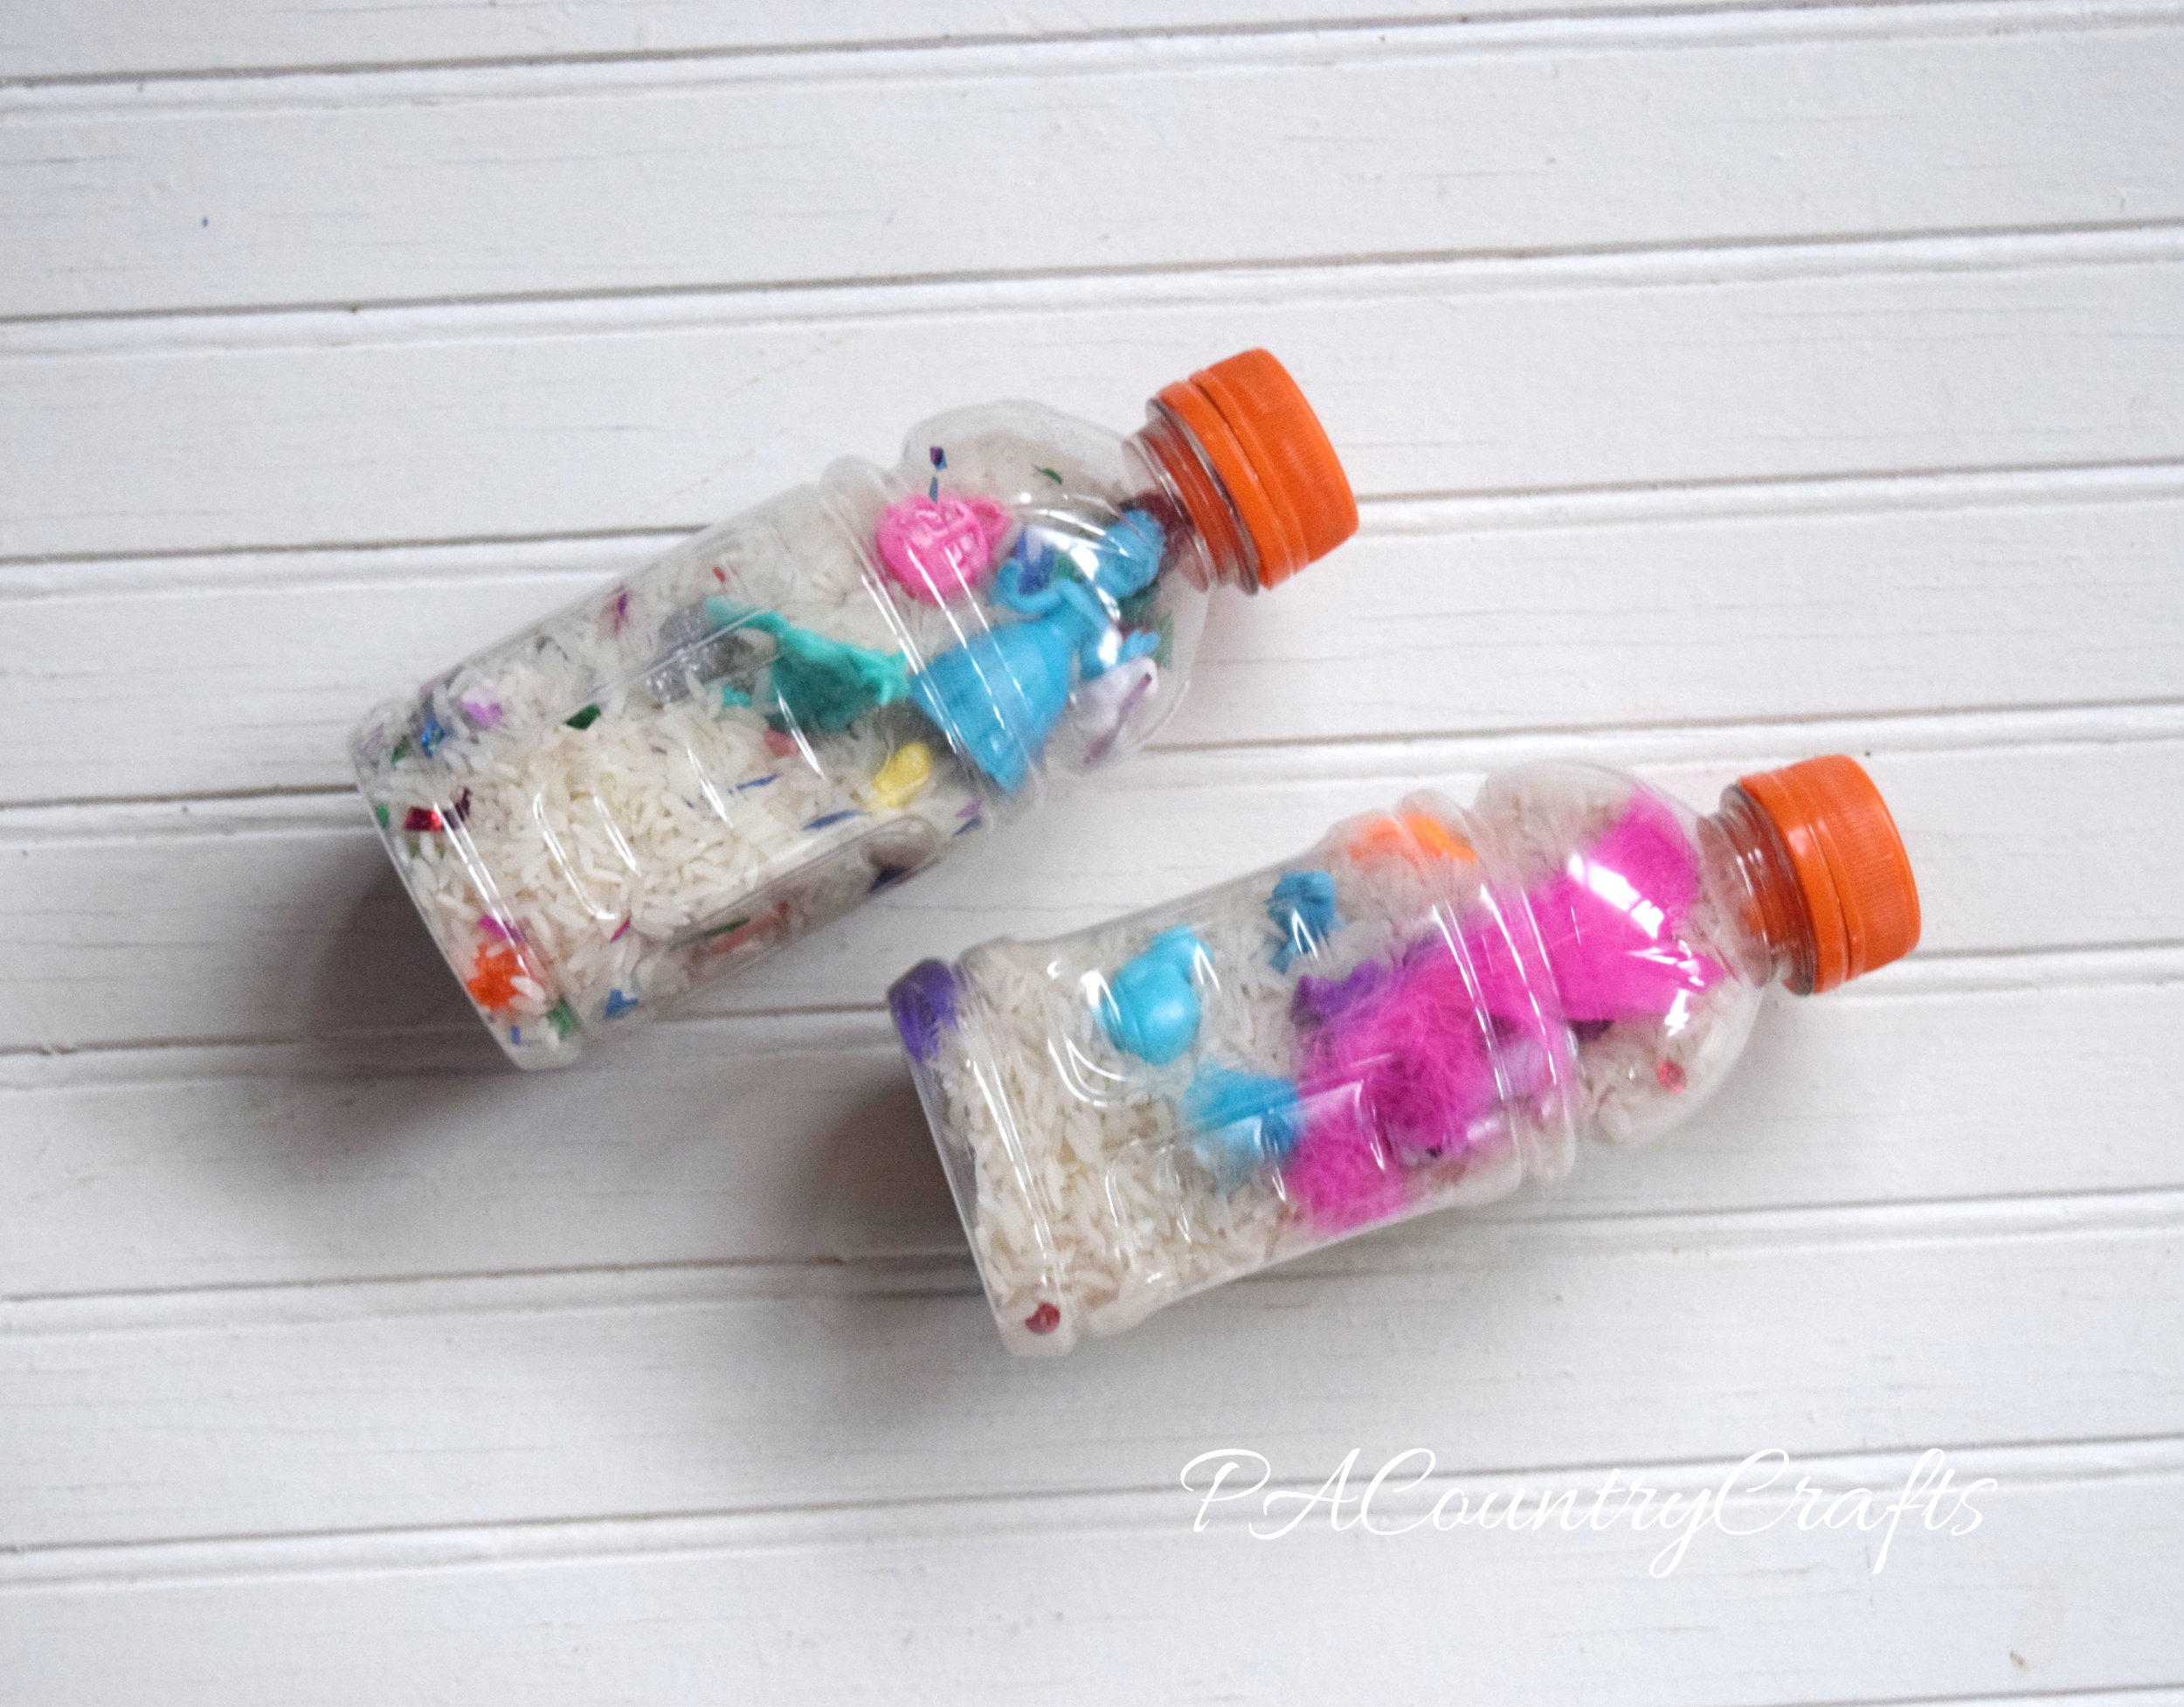 I Spy Bottles for MOPS Creative Activities- fun to do with the kids